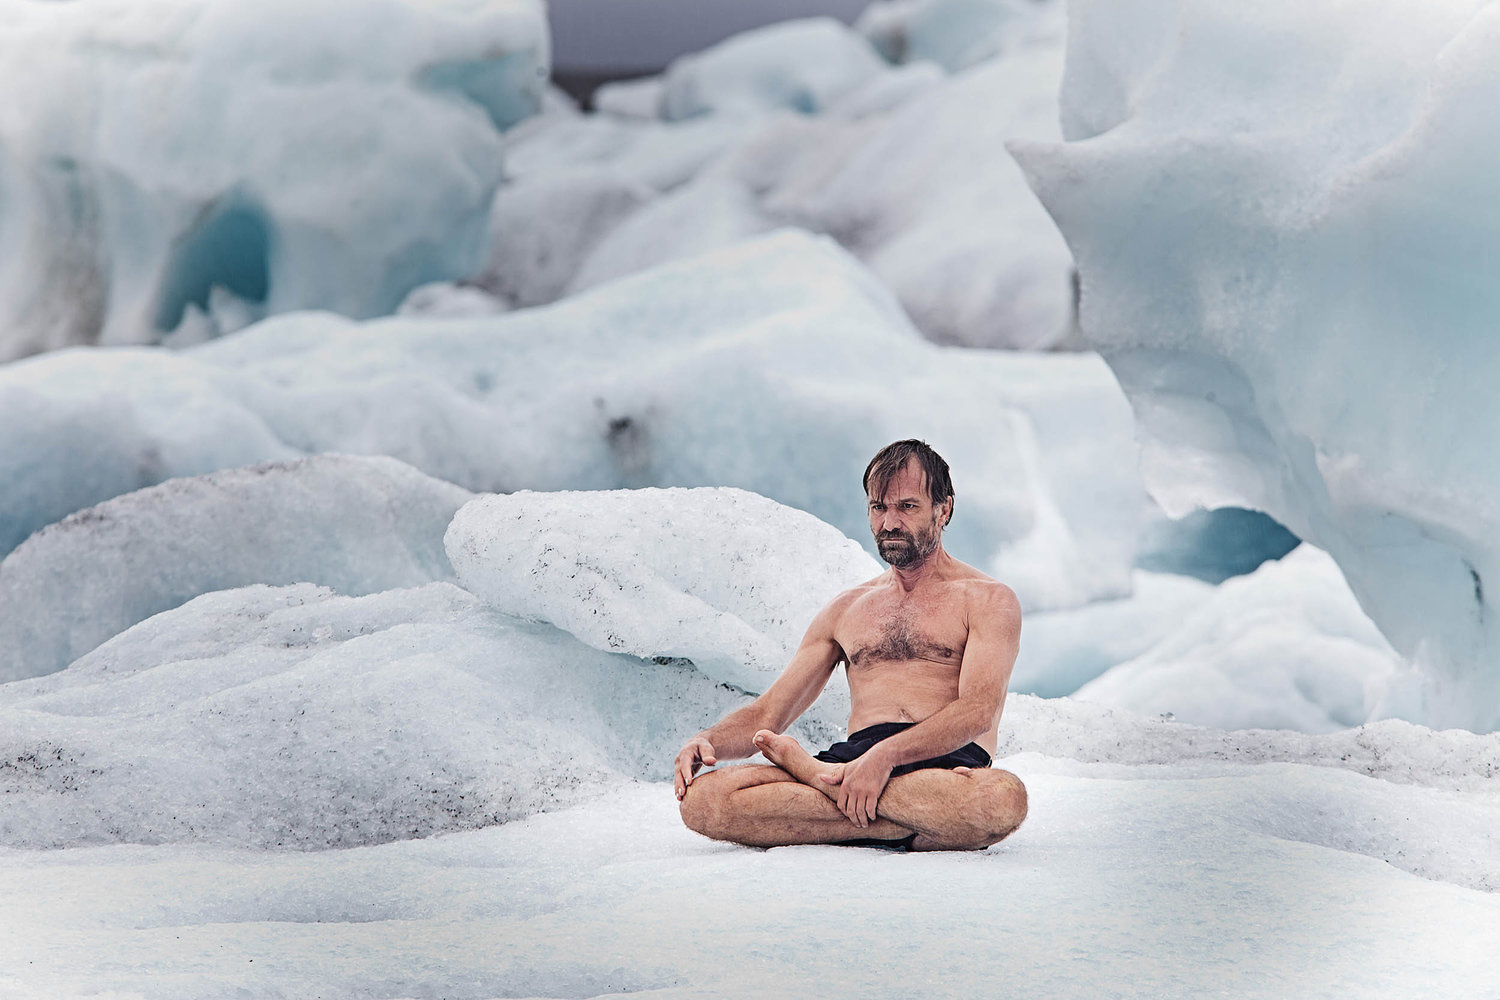 wim hof photo